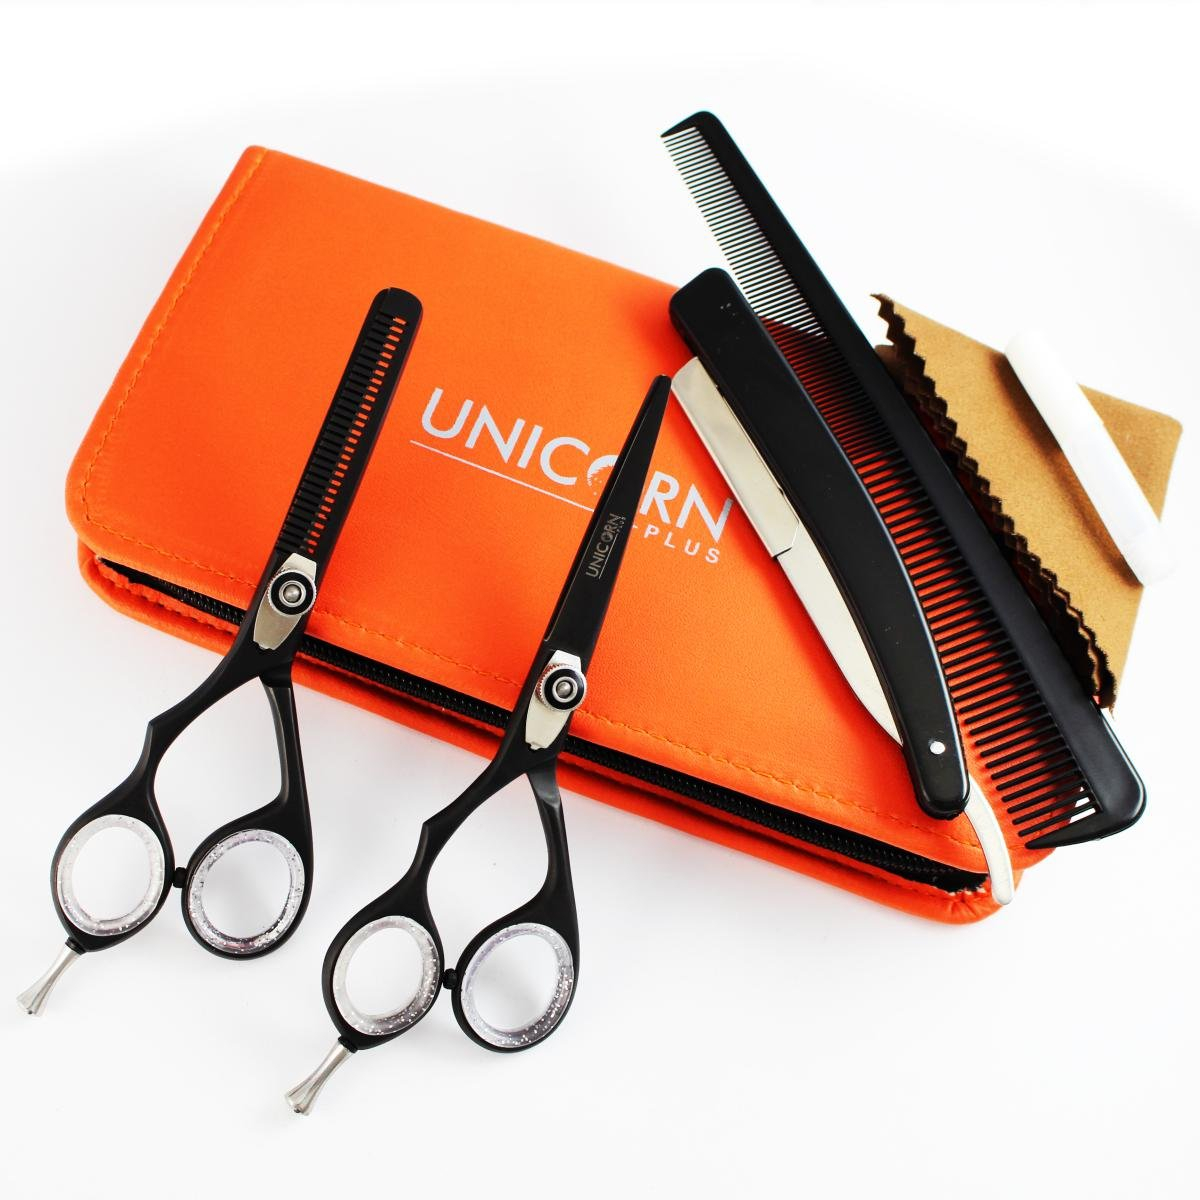 PREMIUM Quality Brand New Left -Handed 2 x Professional Hair Cutting & Thinning Scissors Shears Hairdressing Set 5.5 Inch, Deep Black + FREE Shipping and Online Tracking Unicorn Plus pr-1052-uc